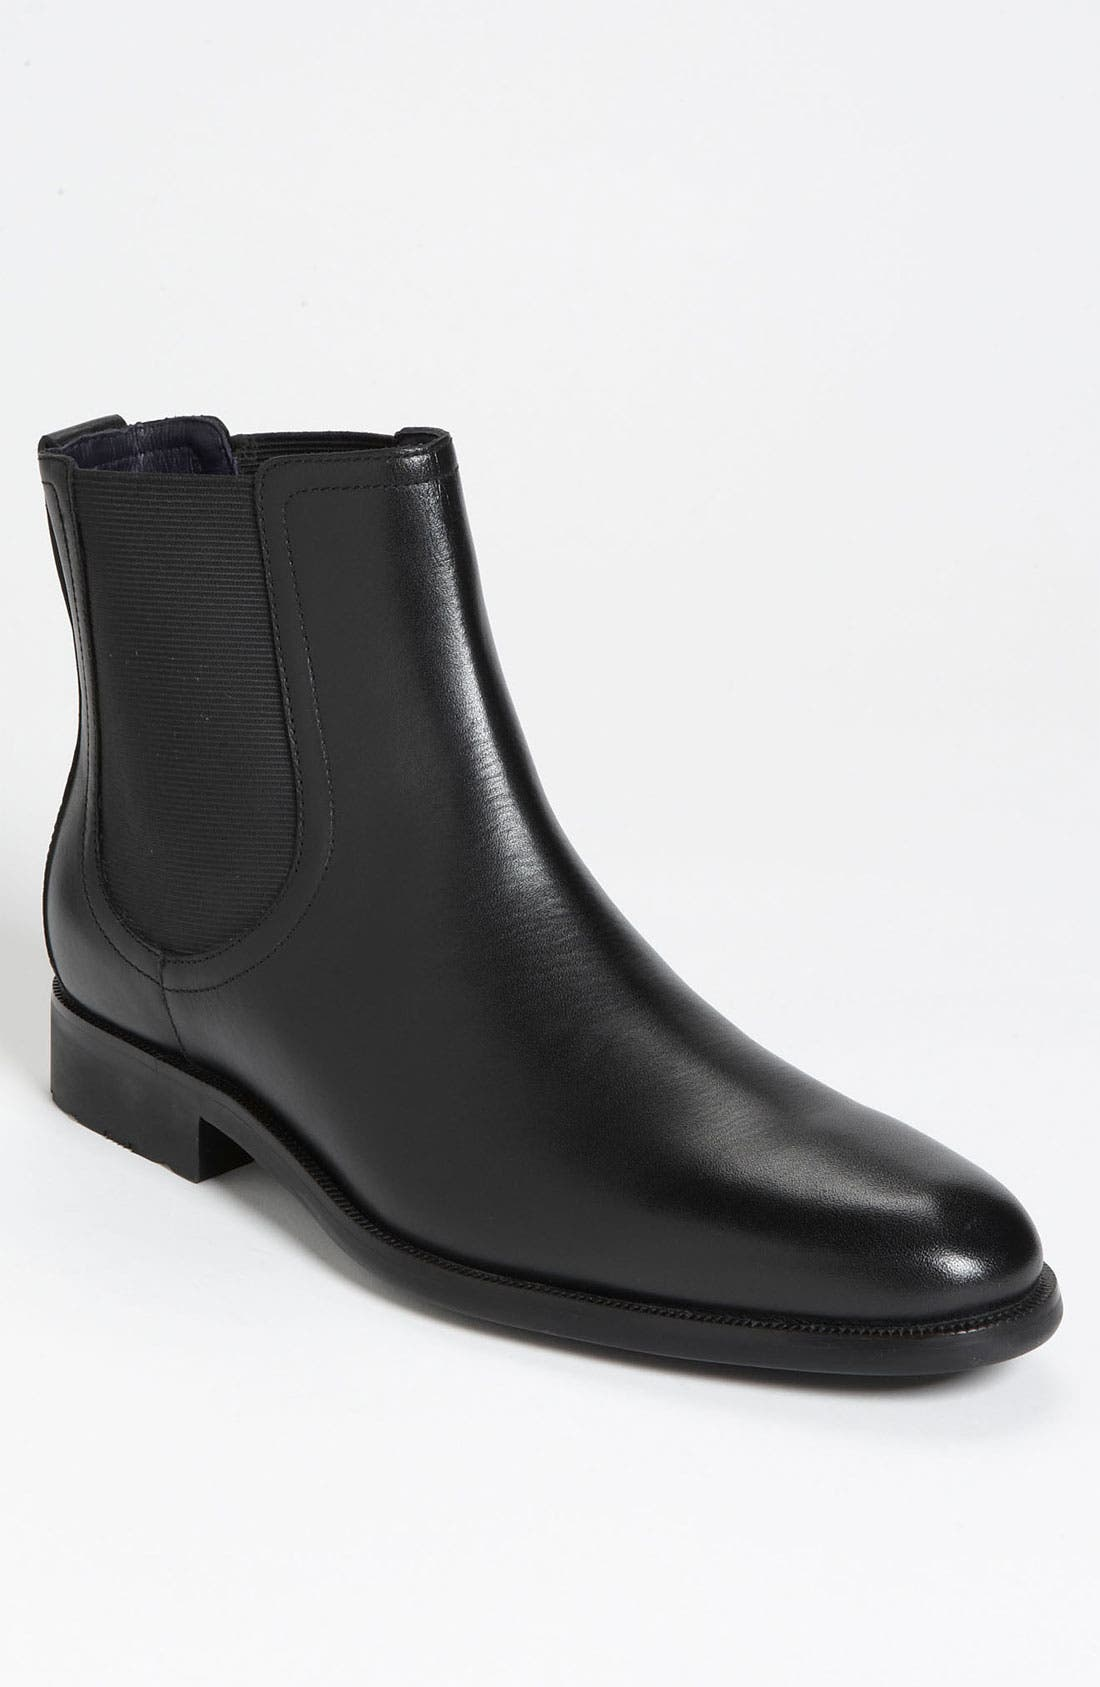 Alternate Image 1 Selected - Cole Haan 'Air Stanton' Chelsea Boot